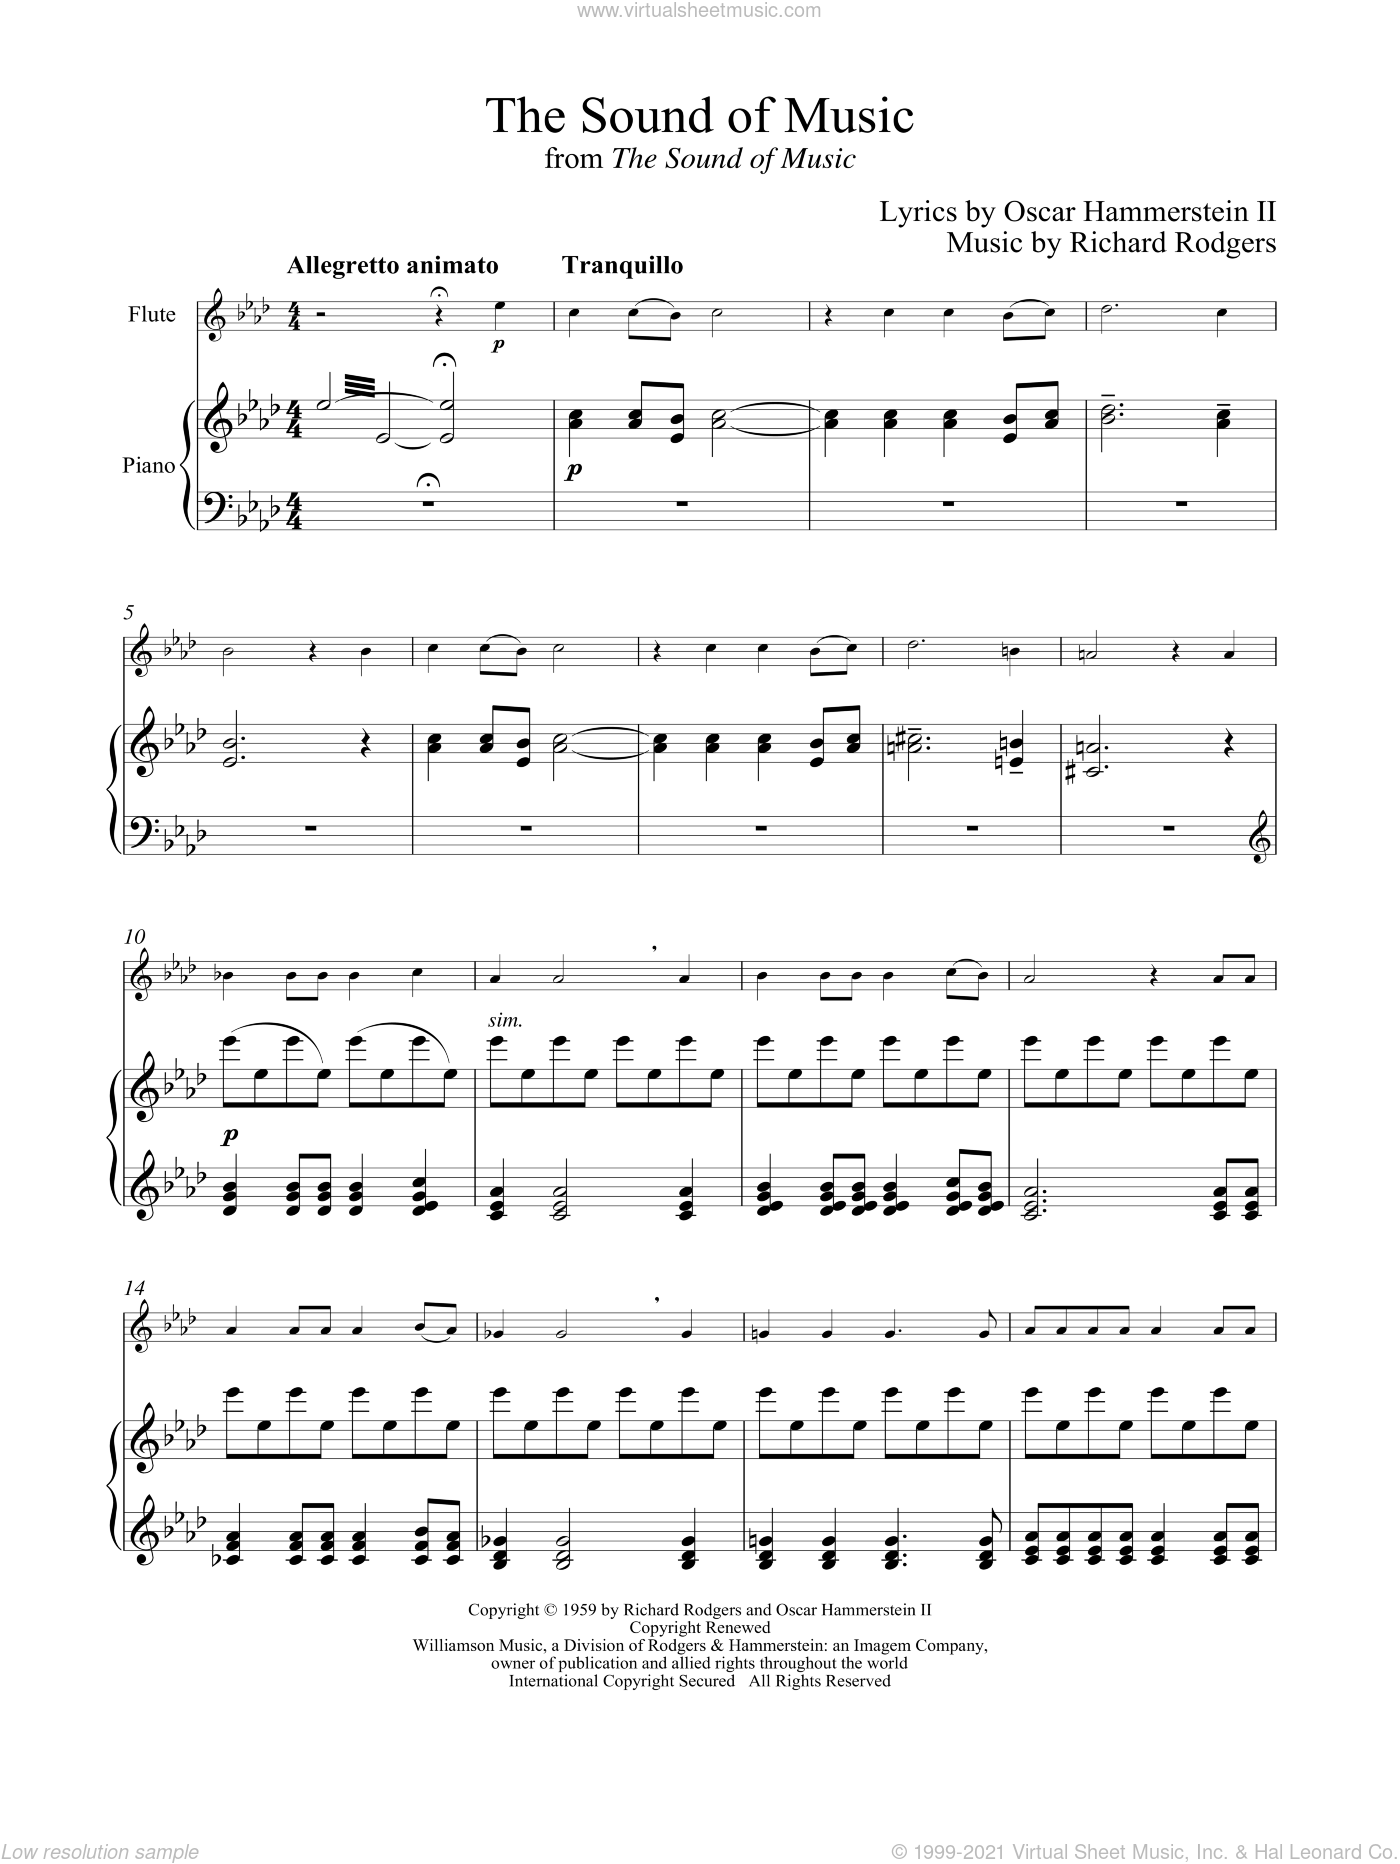 The Sound Of Music sheet music for flute and piano by Rodgers & Hammerstein, Oscar II Hammerstein and Richard Rodgers, intermediate skill level